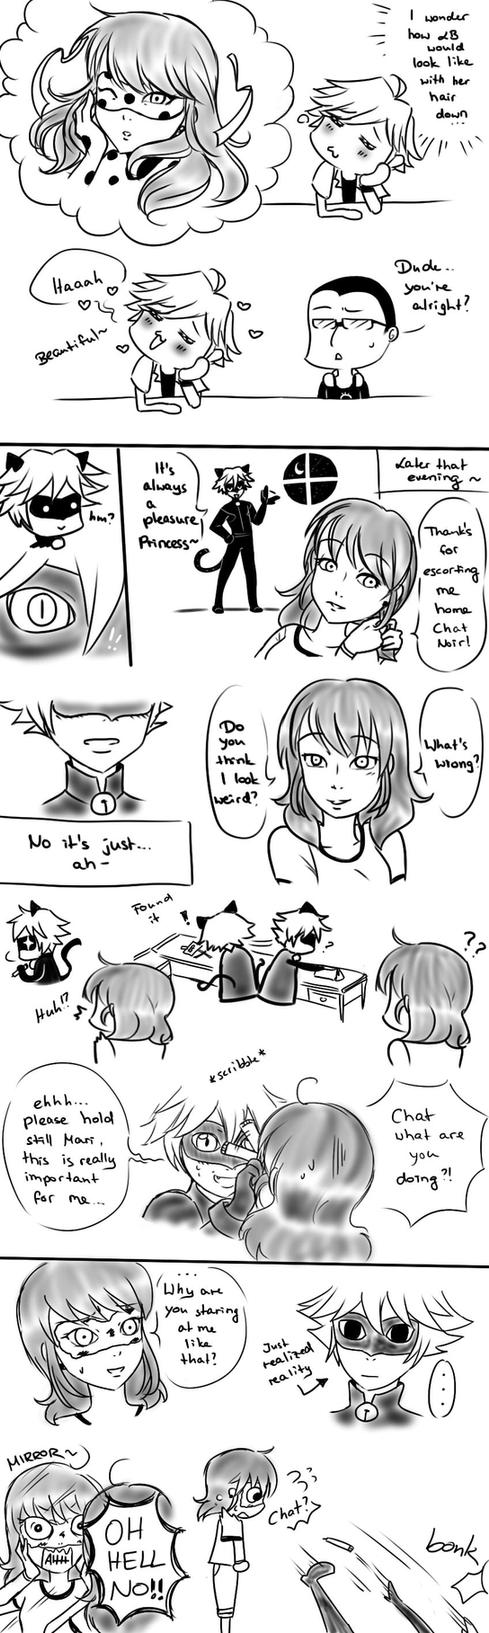 Loose hair - MLB Comic by kaminekoshi